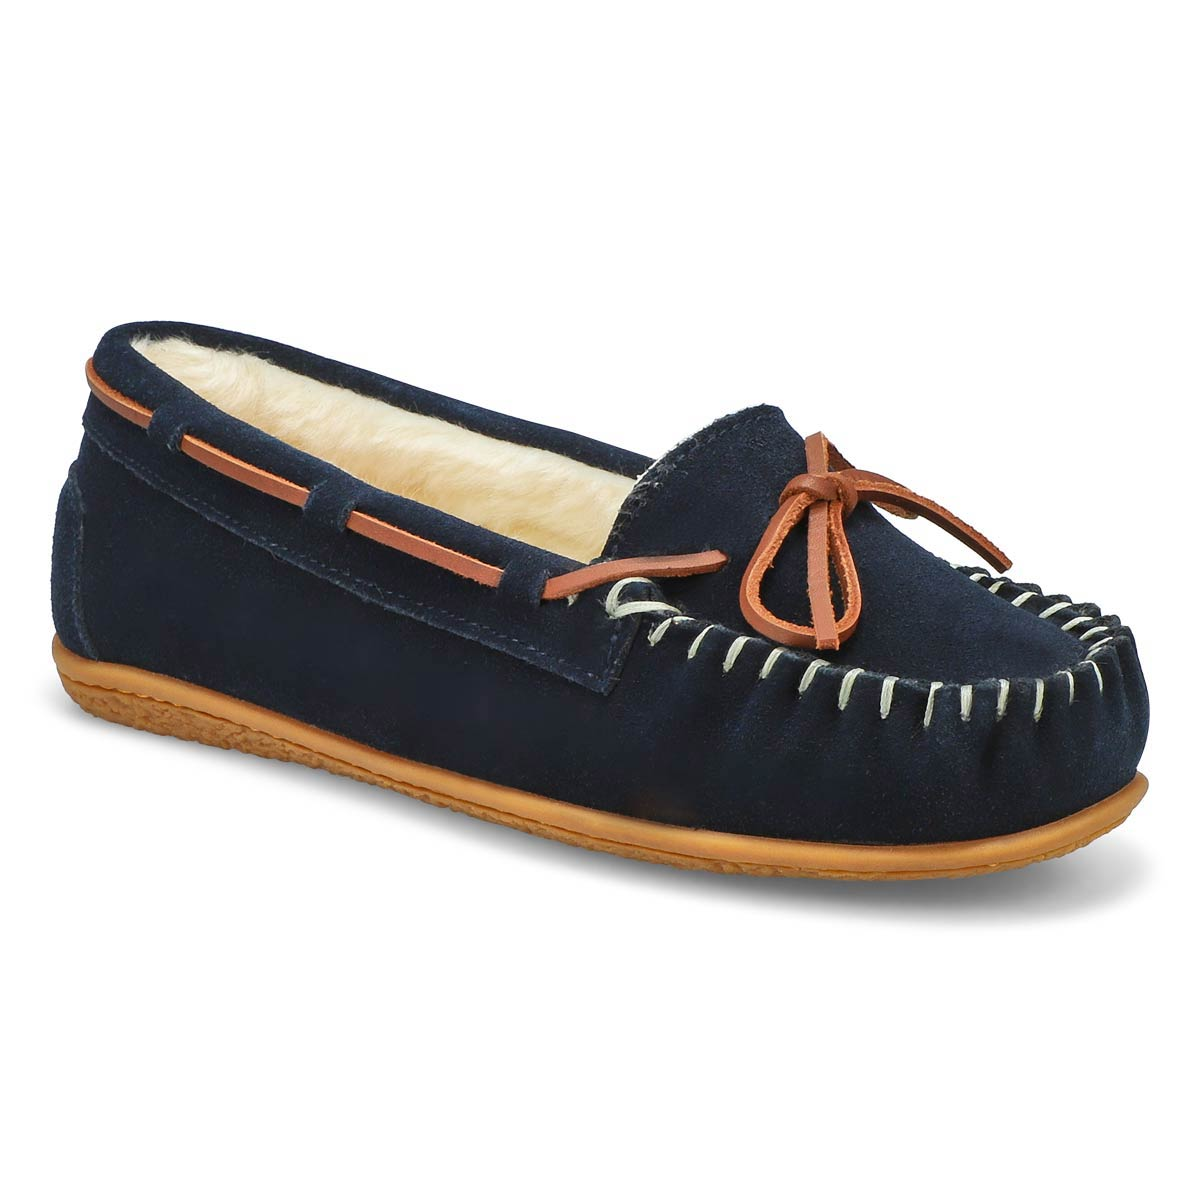 Women's BALI SUPREME nvy suede ballerina moccasins